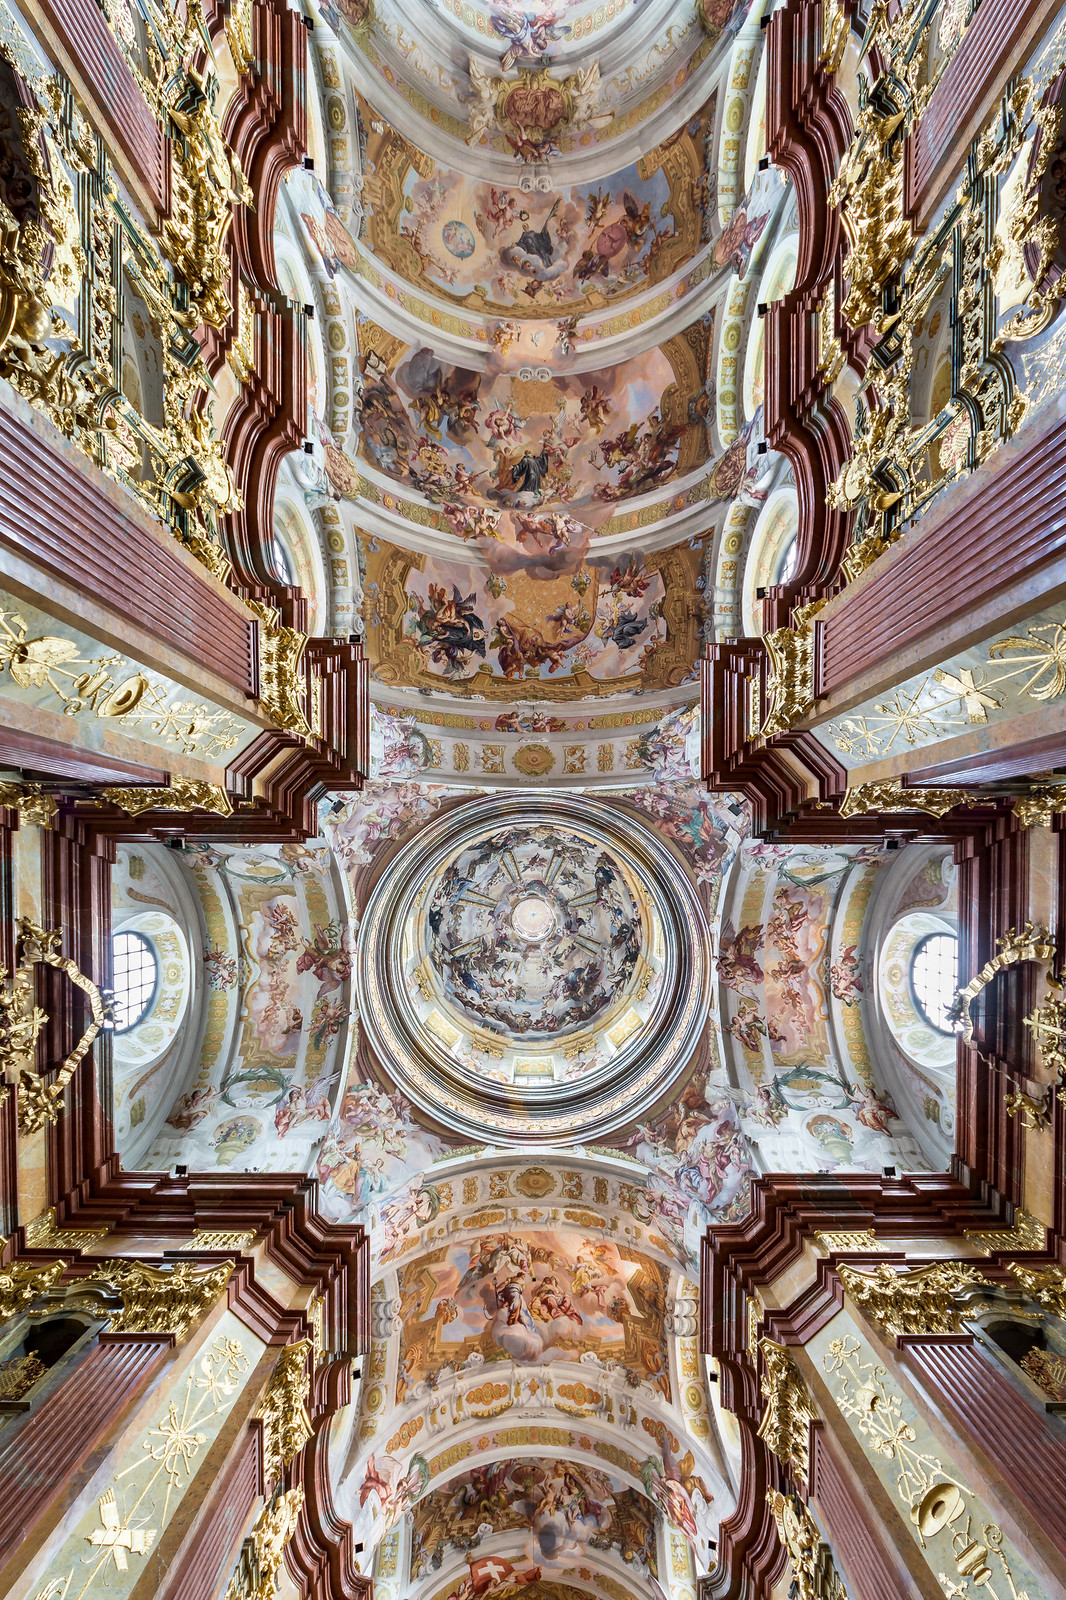 Frescos of dome and ceiling in Melk Abbey Church (Austria) by Johann Michael Rottmayr (1716-22). Credit Uoaei1